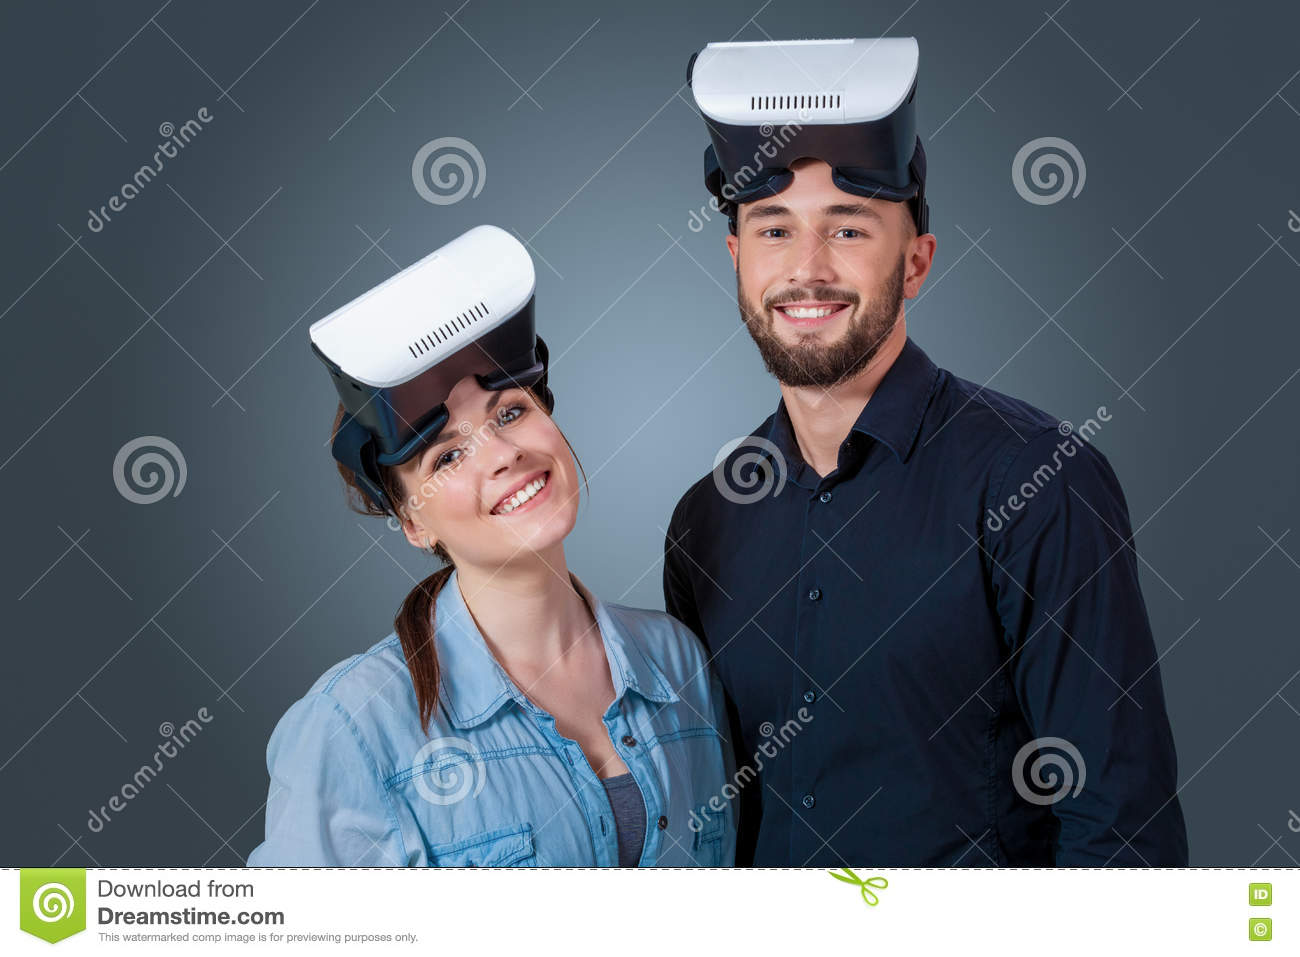 e22444b4241d Excited young couple using a VR headset glasses and experiencing virtual  reality on grey blue background. Looking at the camera